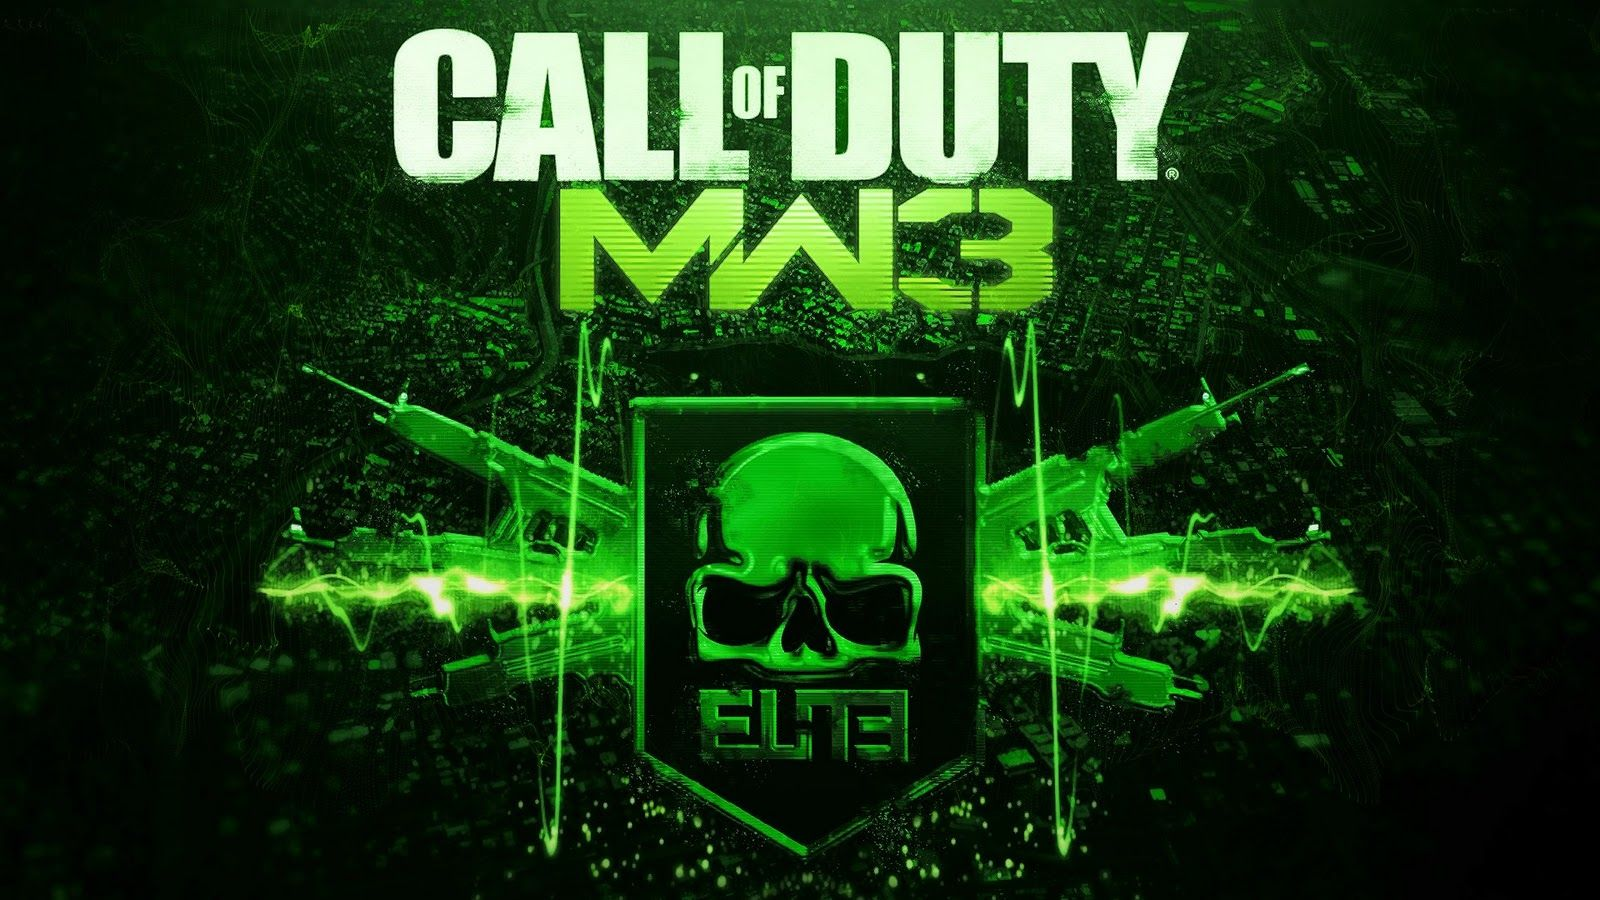 Call Of Duty Mw3 Wallpaper Games Wallpapers Call Of Duty Modern Wallpaper Modern Warfare